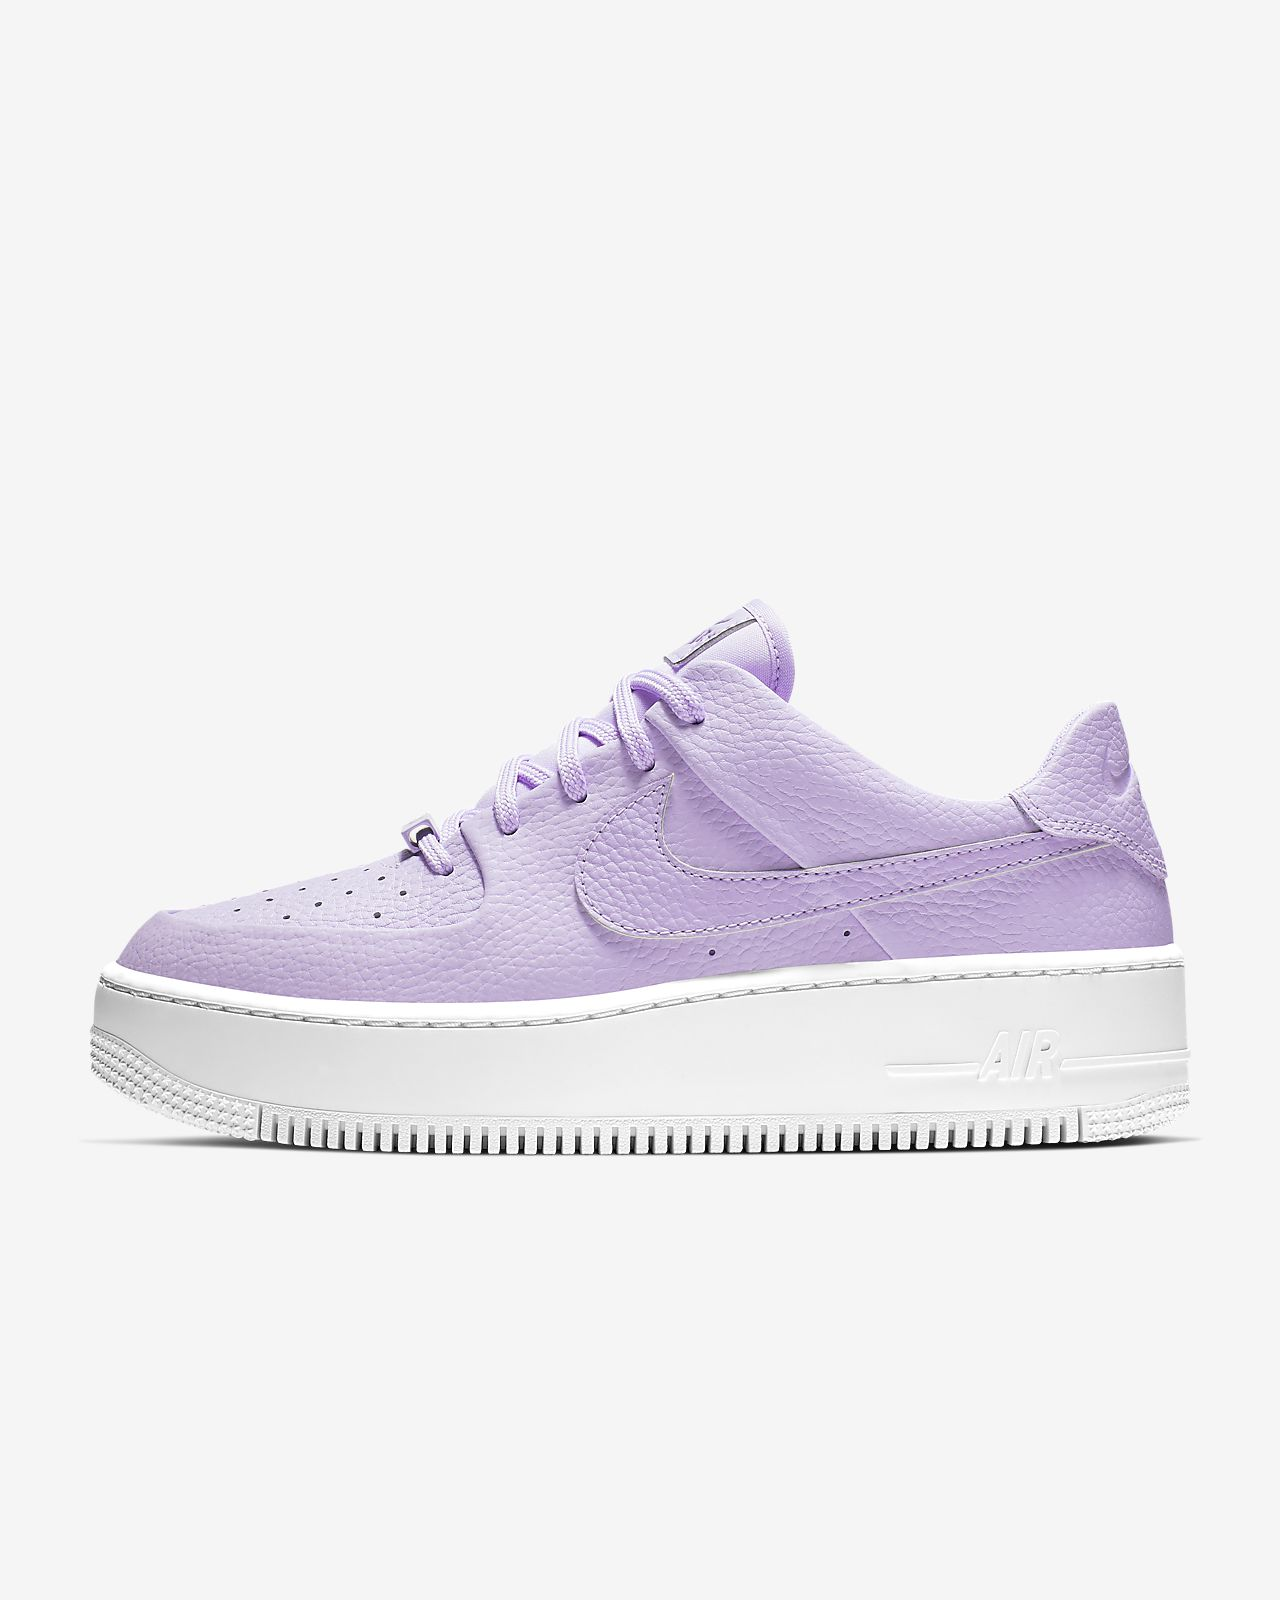 official photos 25a3f 6f308 ... Chaussure Nike Air Force 1 Sage Low pour Femme